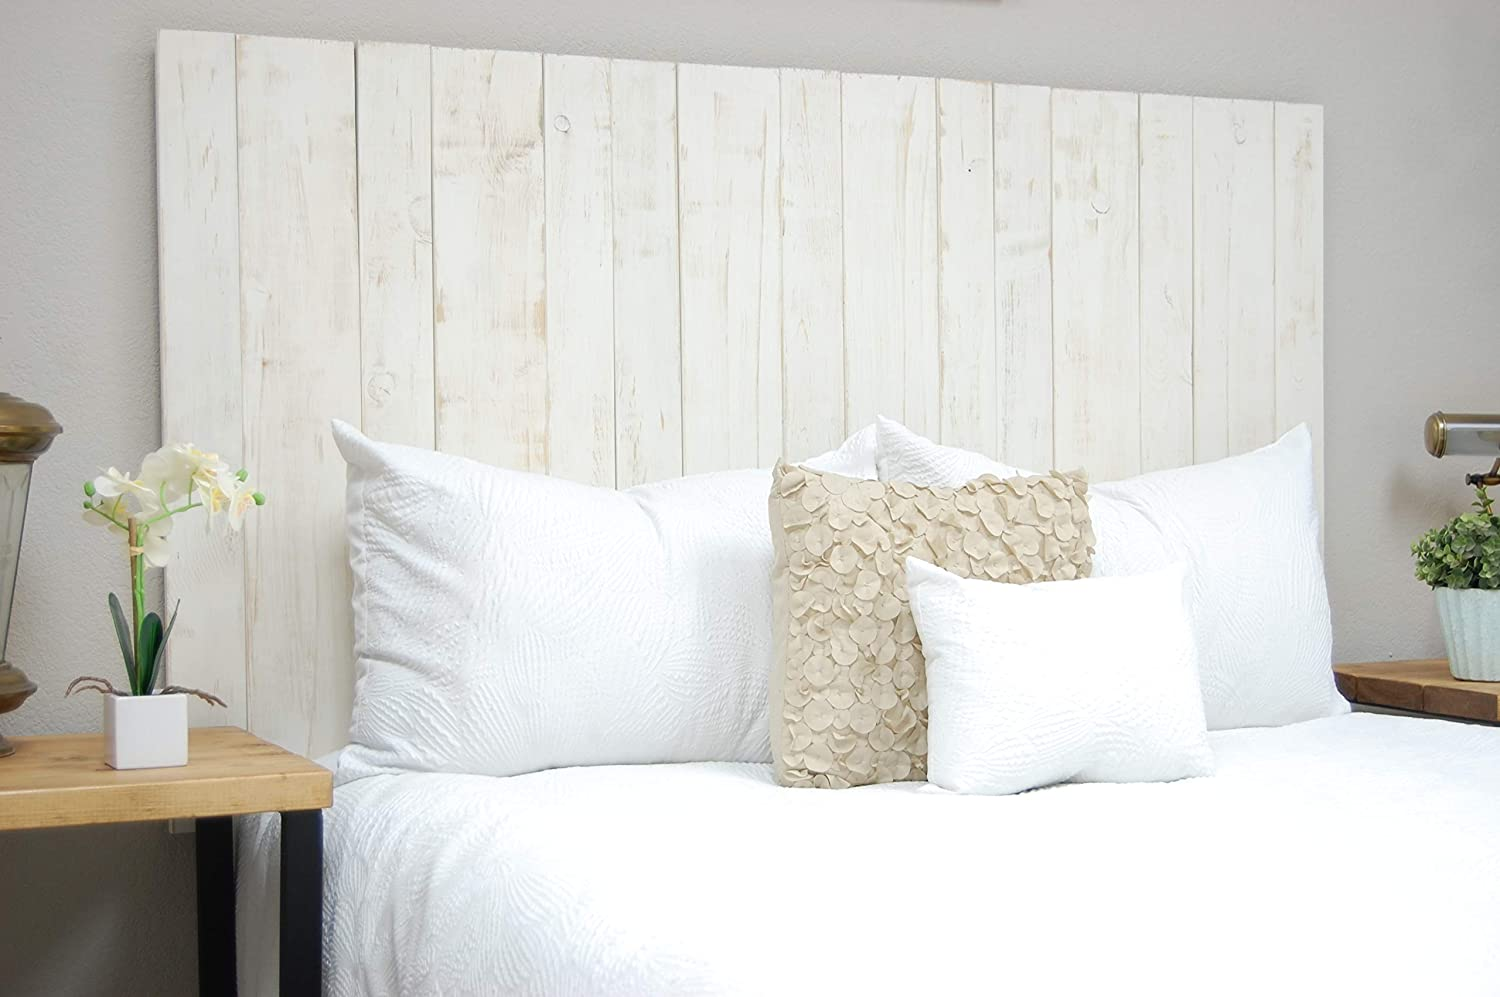 Whitewash Sales for sale Headboard California King Weathered Size Complete Free Shipping Hanger Style